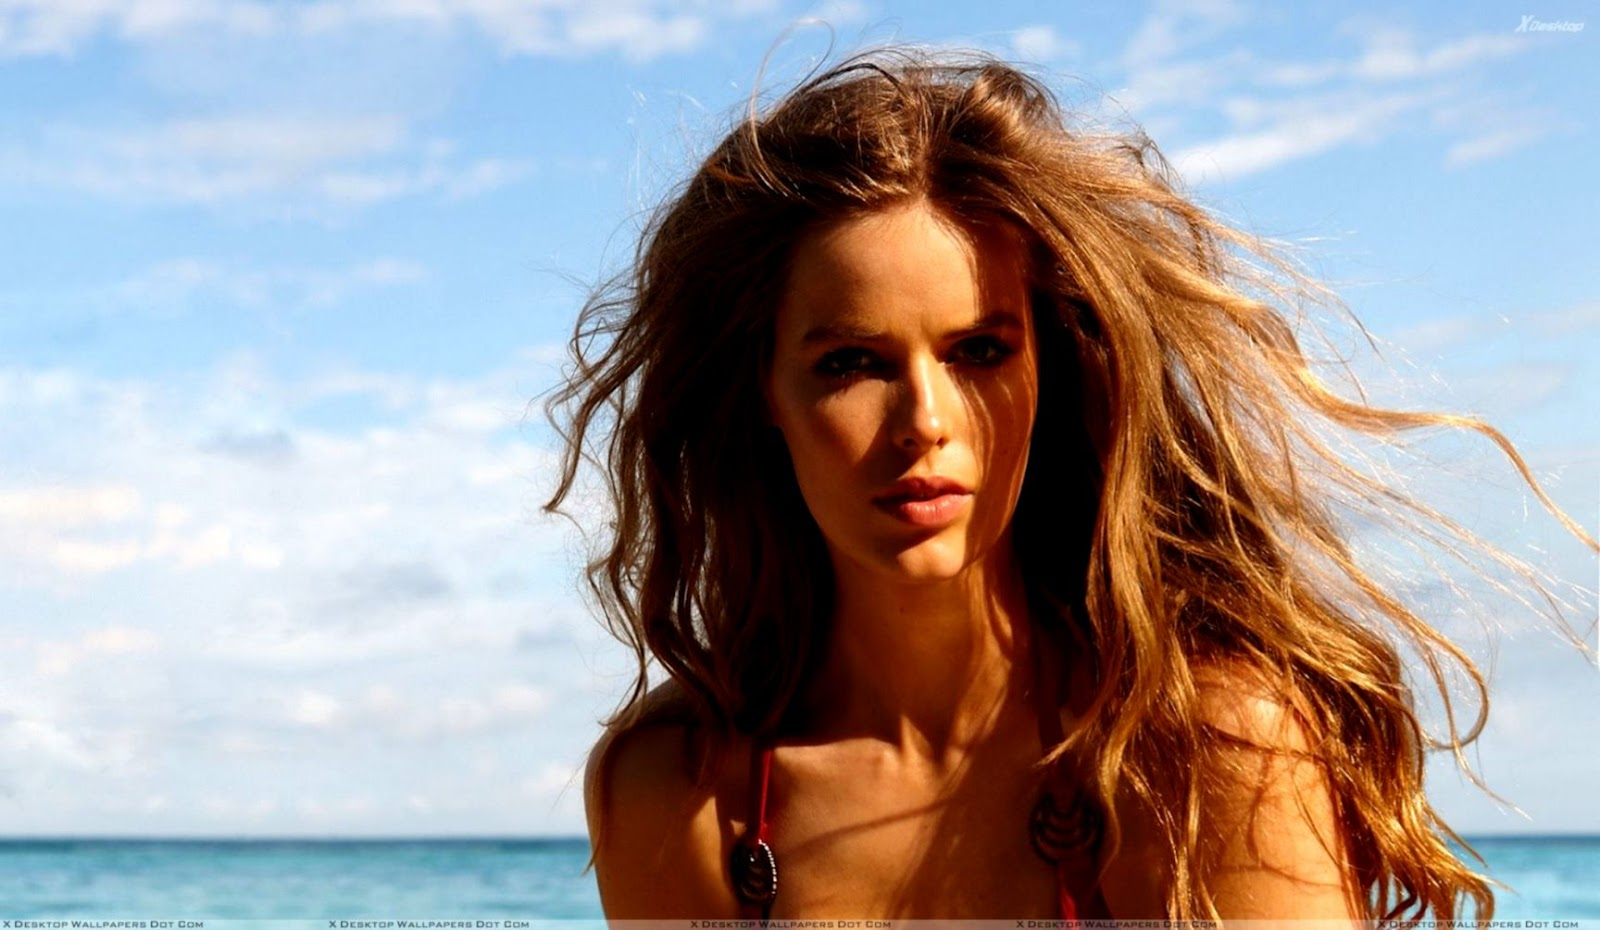 Celebrites Robyn Lawley nude (28 foto and video), Tits, Paparazzi, Instagram, lingerie 2015